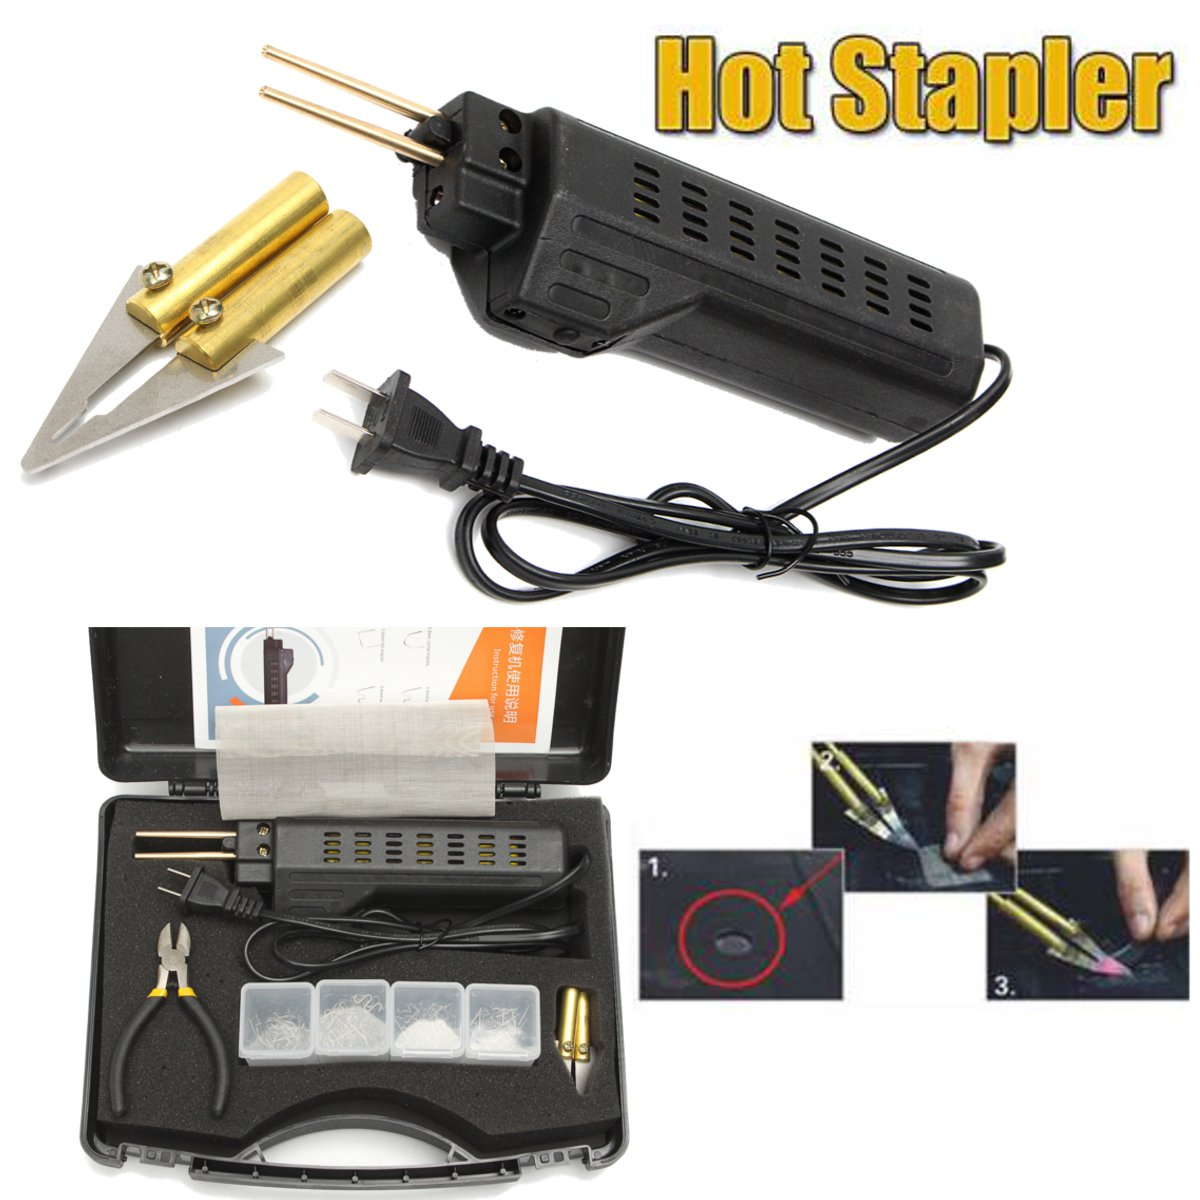 Hot Stapler Car Bumper for Fender Fairing Welder Plastic Repair Kit 200 Staples 600 precut hot stapler replacement staples st 600pc